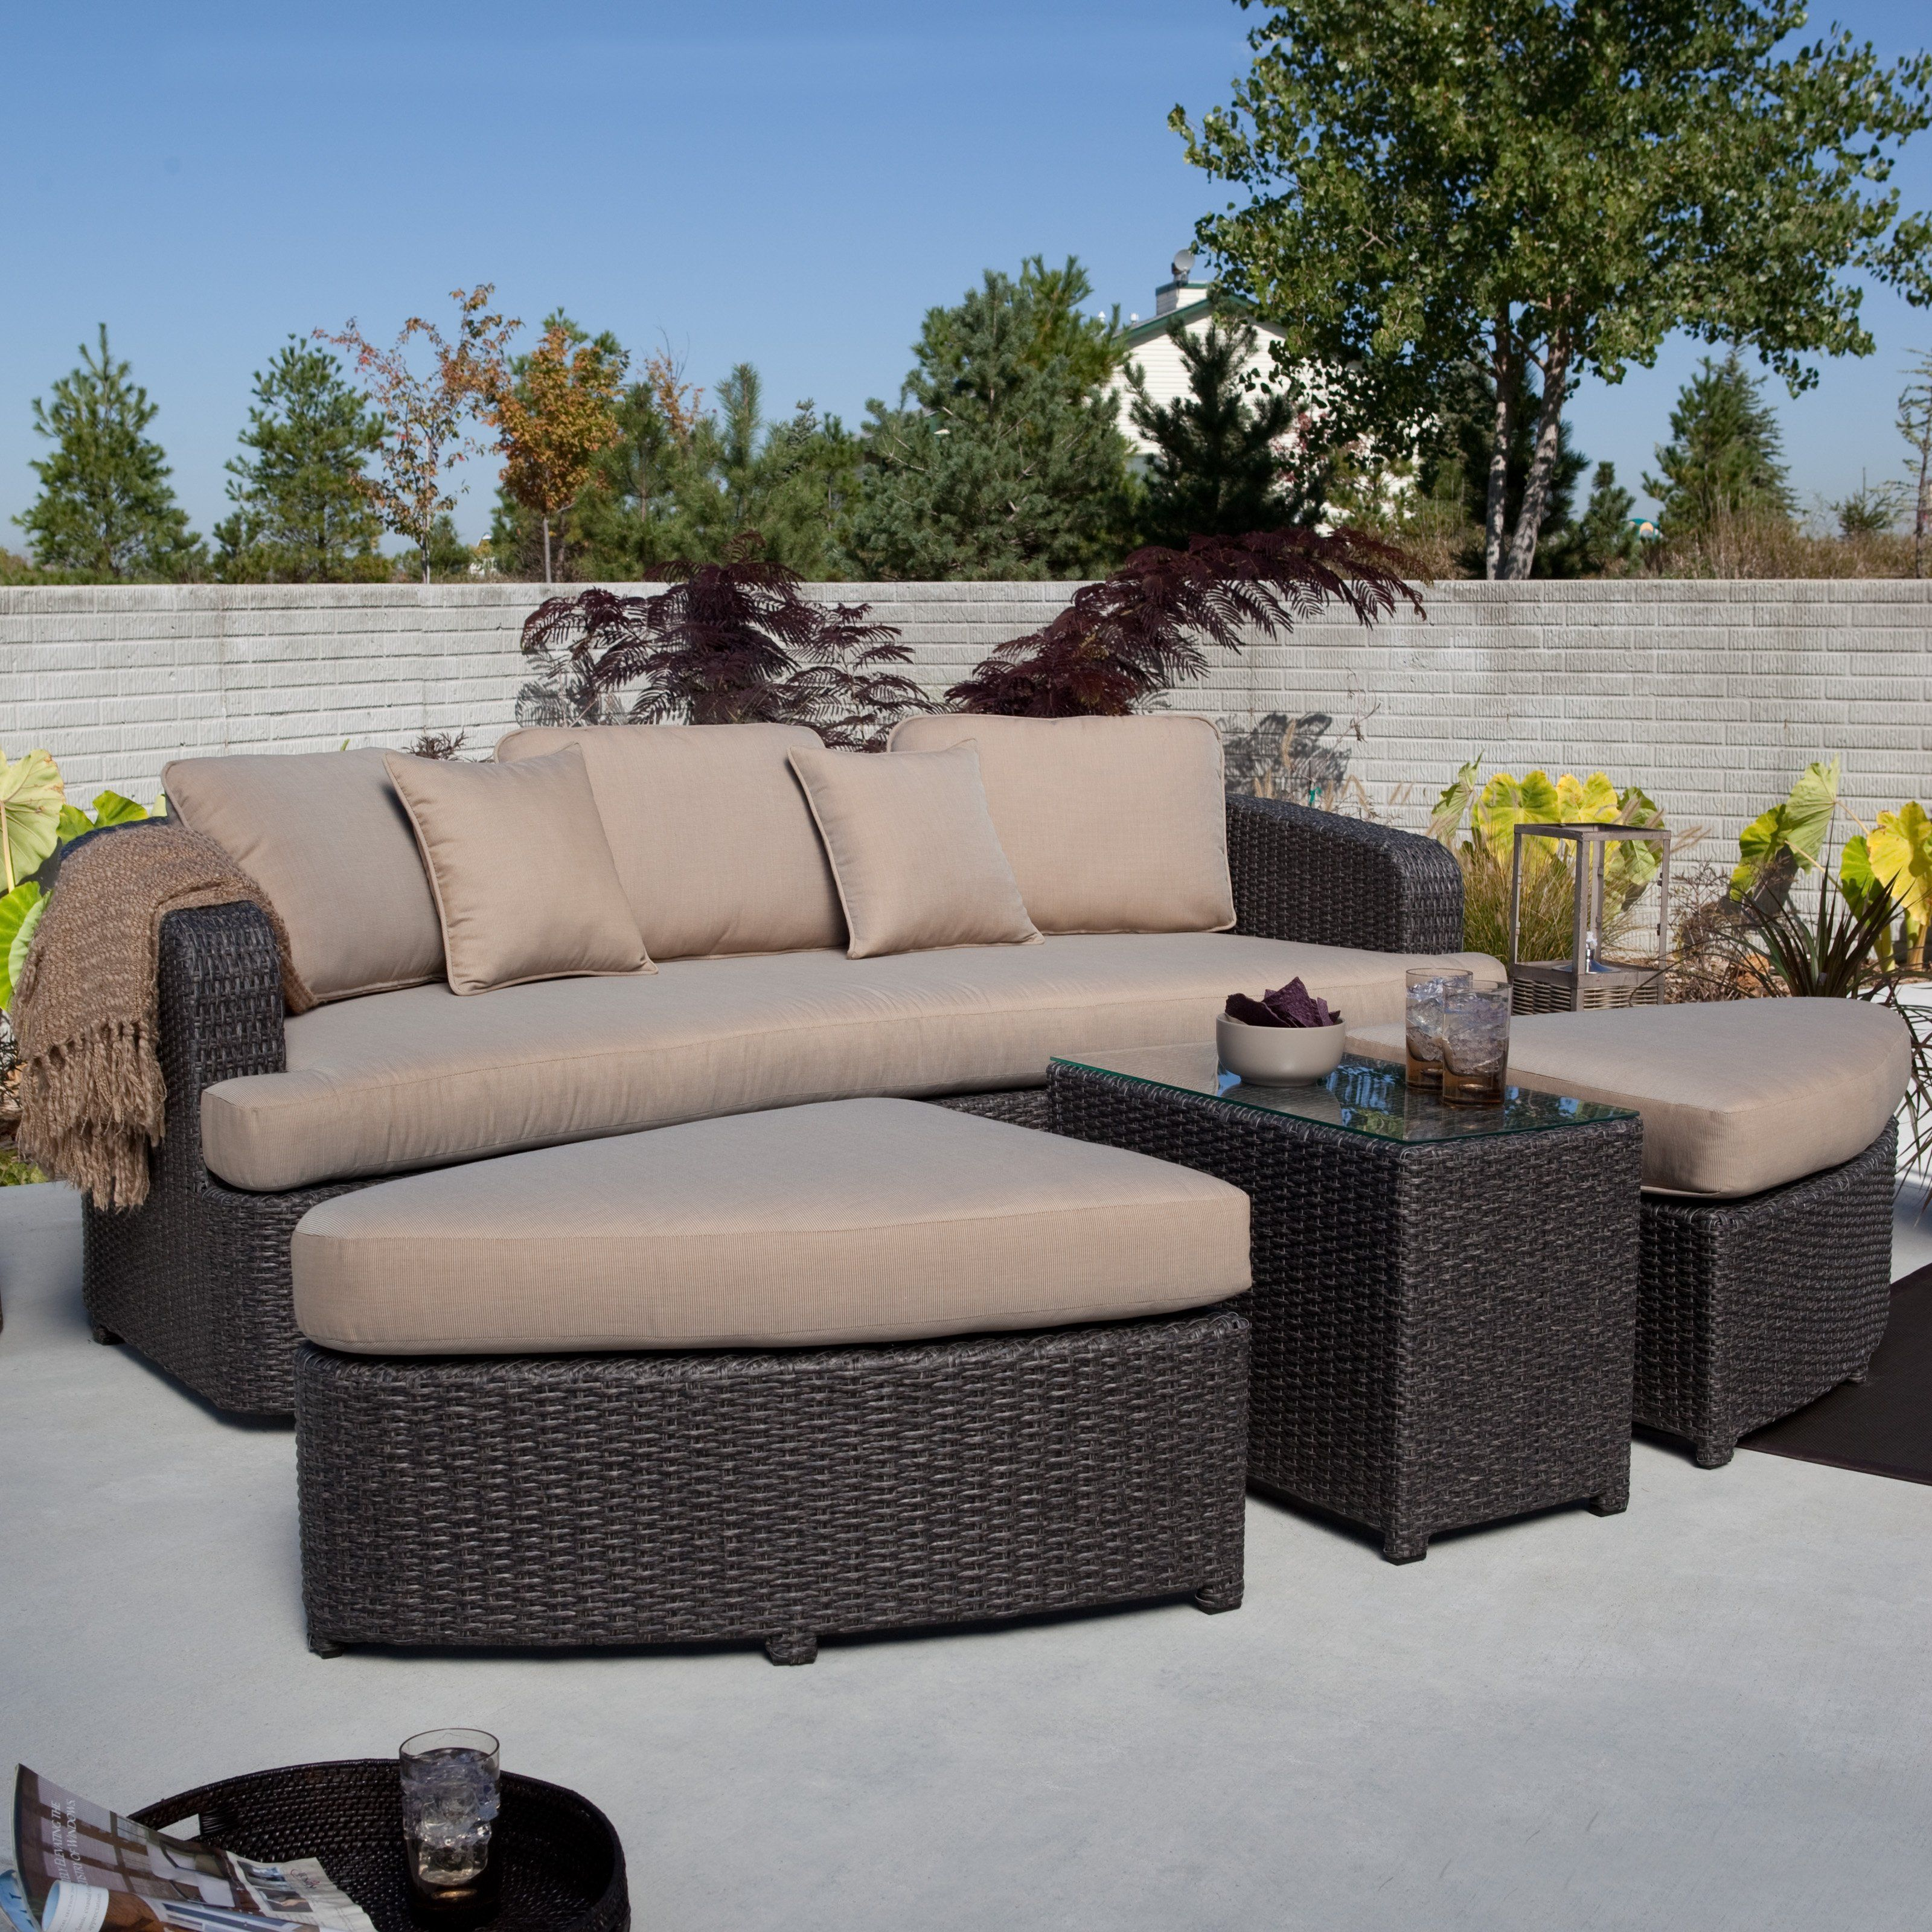 Coral coast montclair all weather wicker sectional sofa set 1499 98 hayneedle com